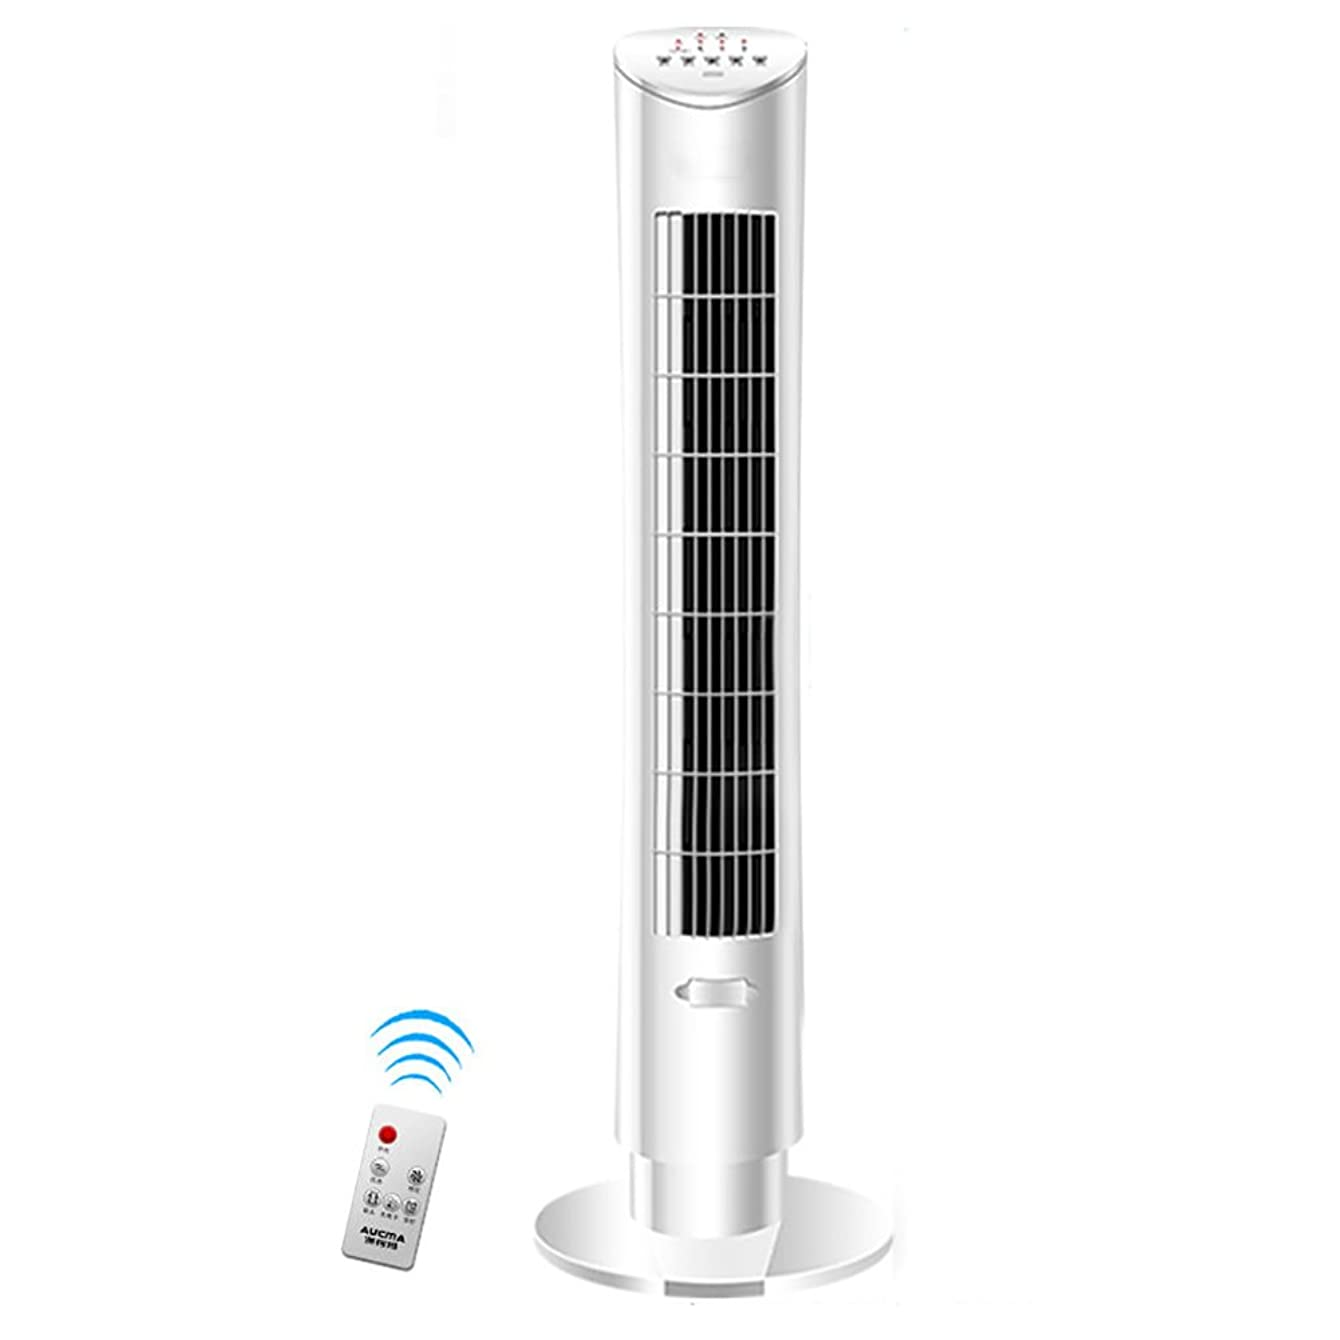 Vertical floor fan Air conditioner fan,Household Timing Fragrance Leafless Silent fan Intelligent remote control Evaporative coolers-White